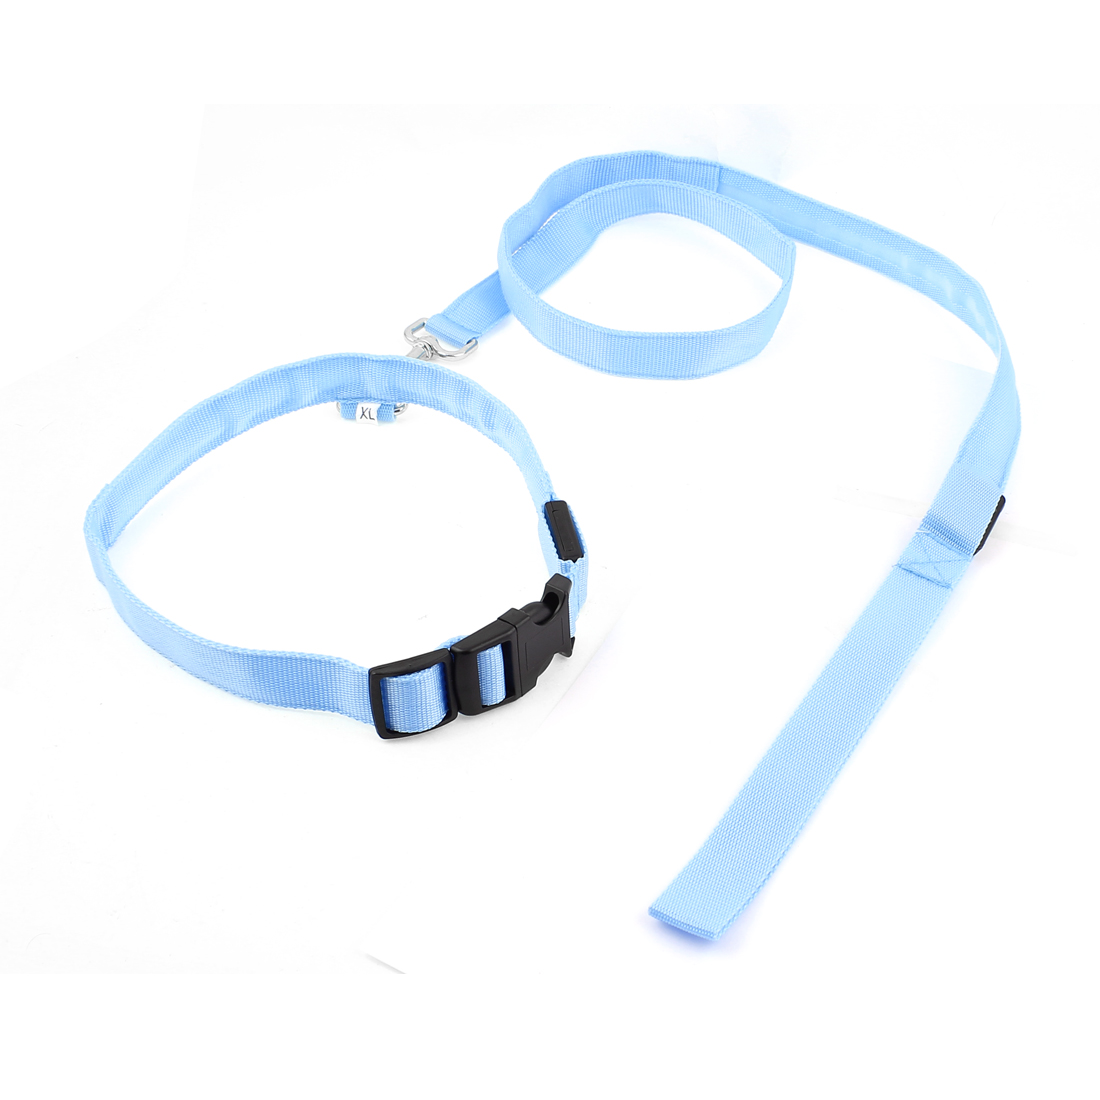 Blue LED Flash Light Release Buckle Pet Dog Adjustable Belt Collar Leash Set